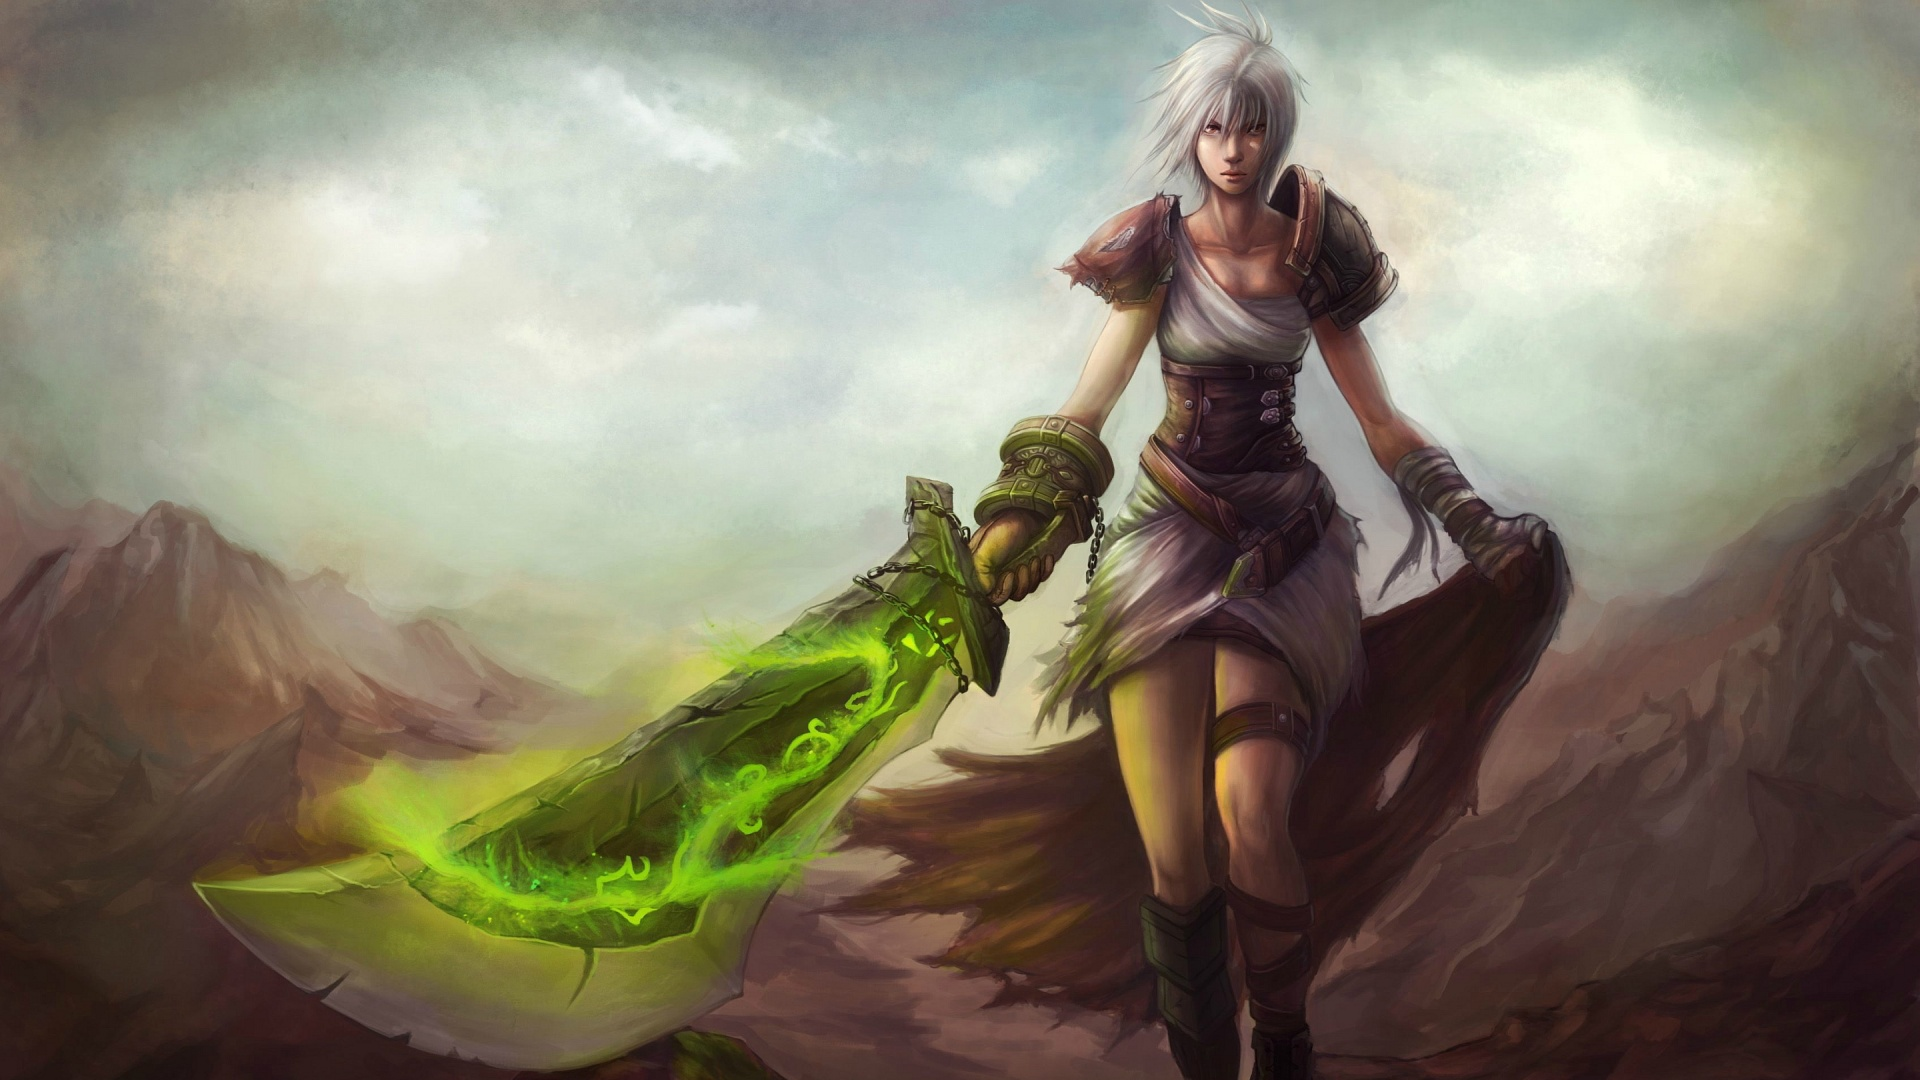 1920x1080 League of legends riven Wallpaper